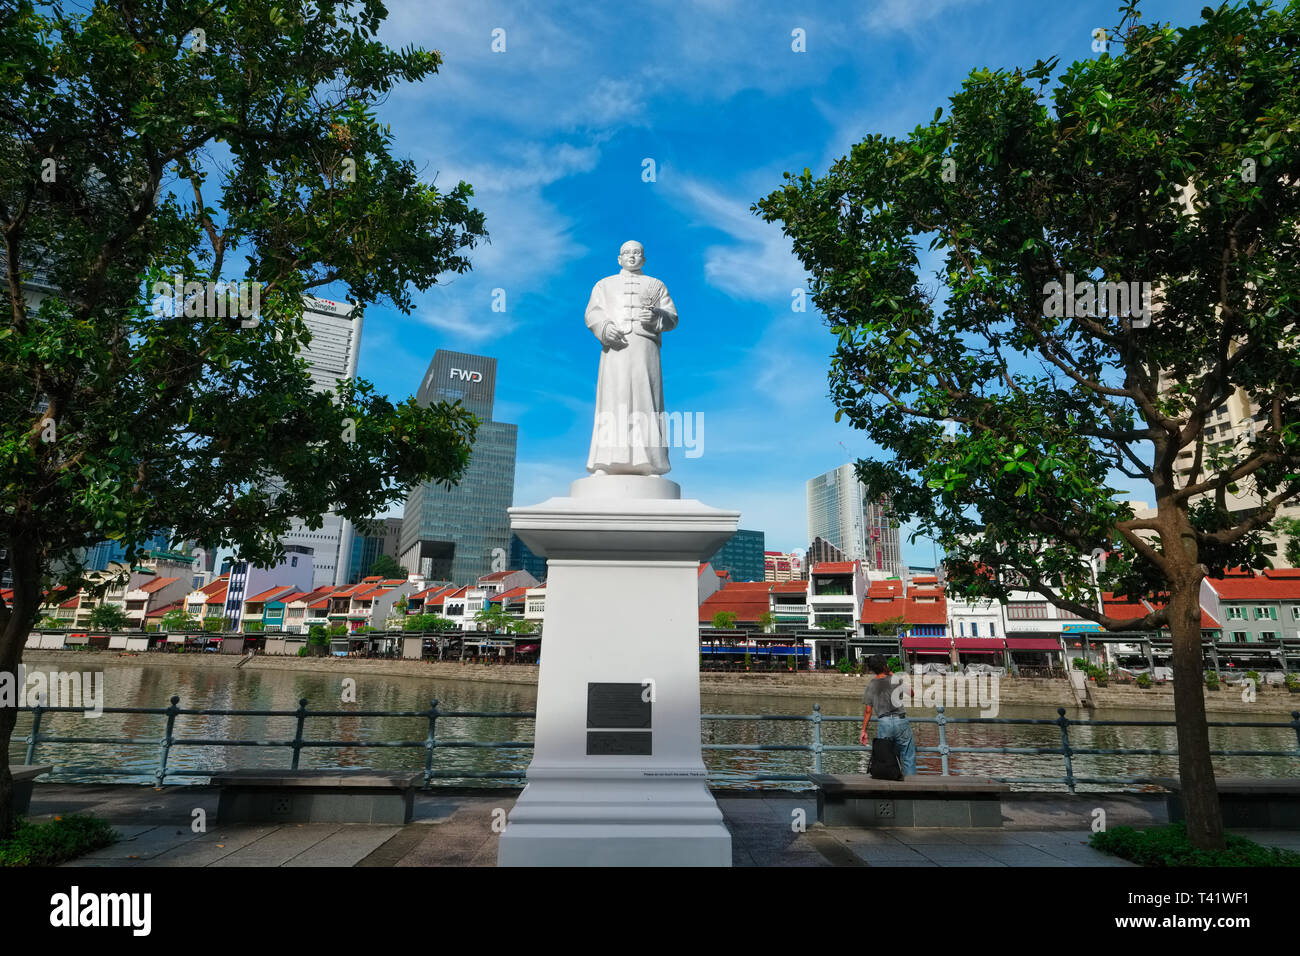 The statue of Tan Tock Seng, a former philanthropist and leader of the Chinese community of Singapore, at Boat Quay, Singapore, by the Singapore River - Stock Image